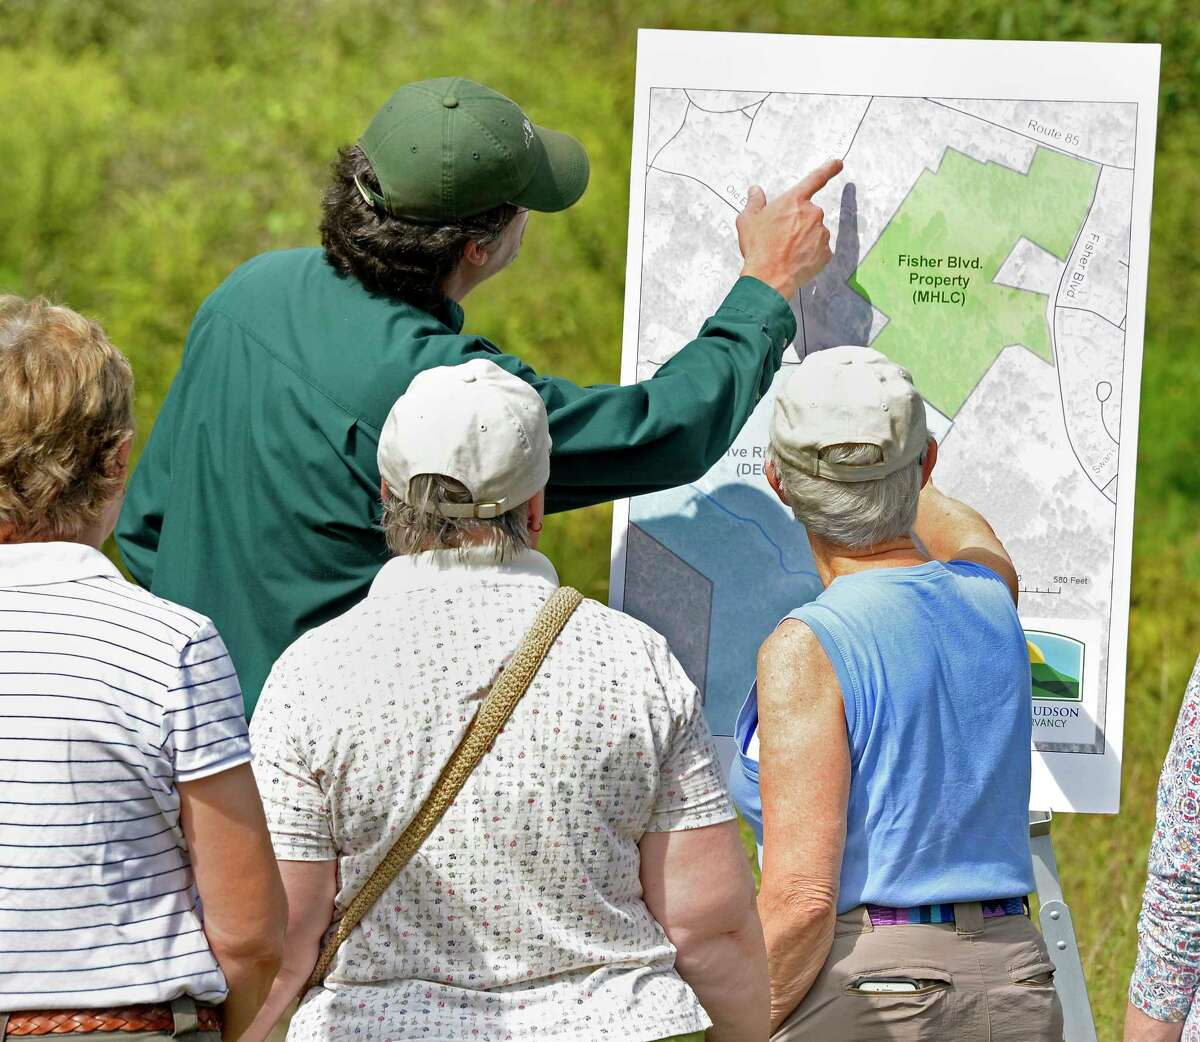 Staff, volunteers, Friends of Five Rivers and members look over a trail map during the announcement of a land acquisition for the Capital Region Thursday August 30, 2018 in Bethlehem, NY. The property is being incorporated into DECOs Five Rivers Environmental Education Center. (John Carl D'Annibale/Times Union)